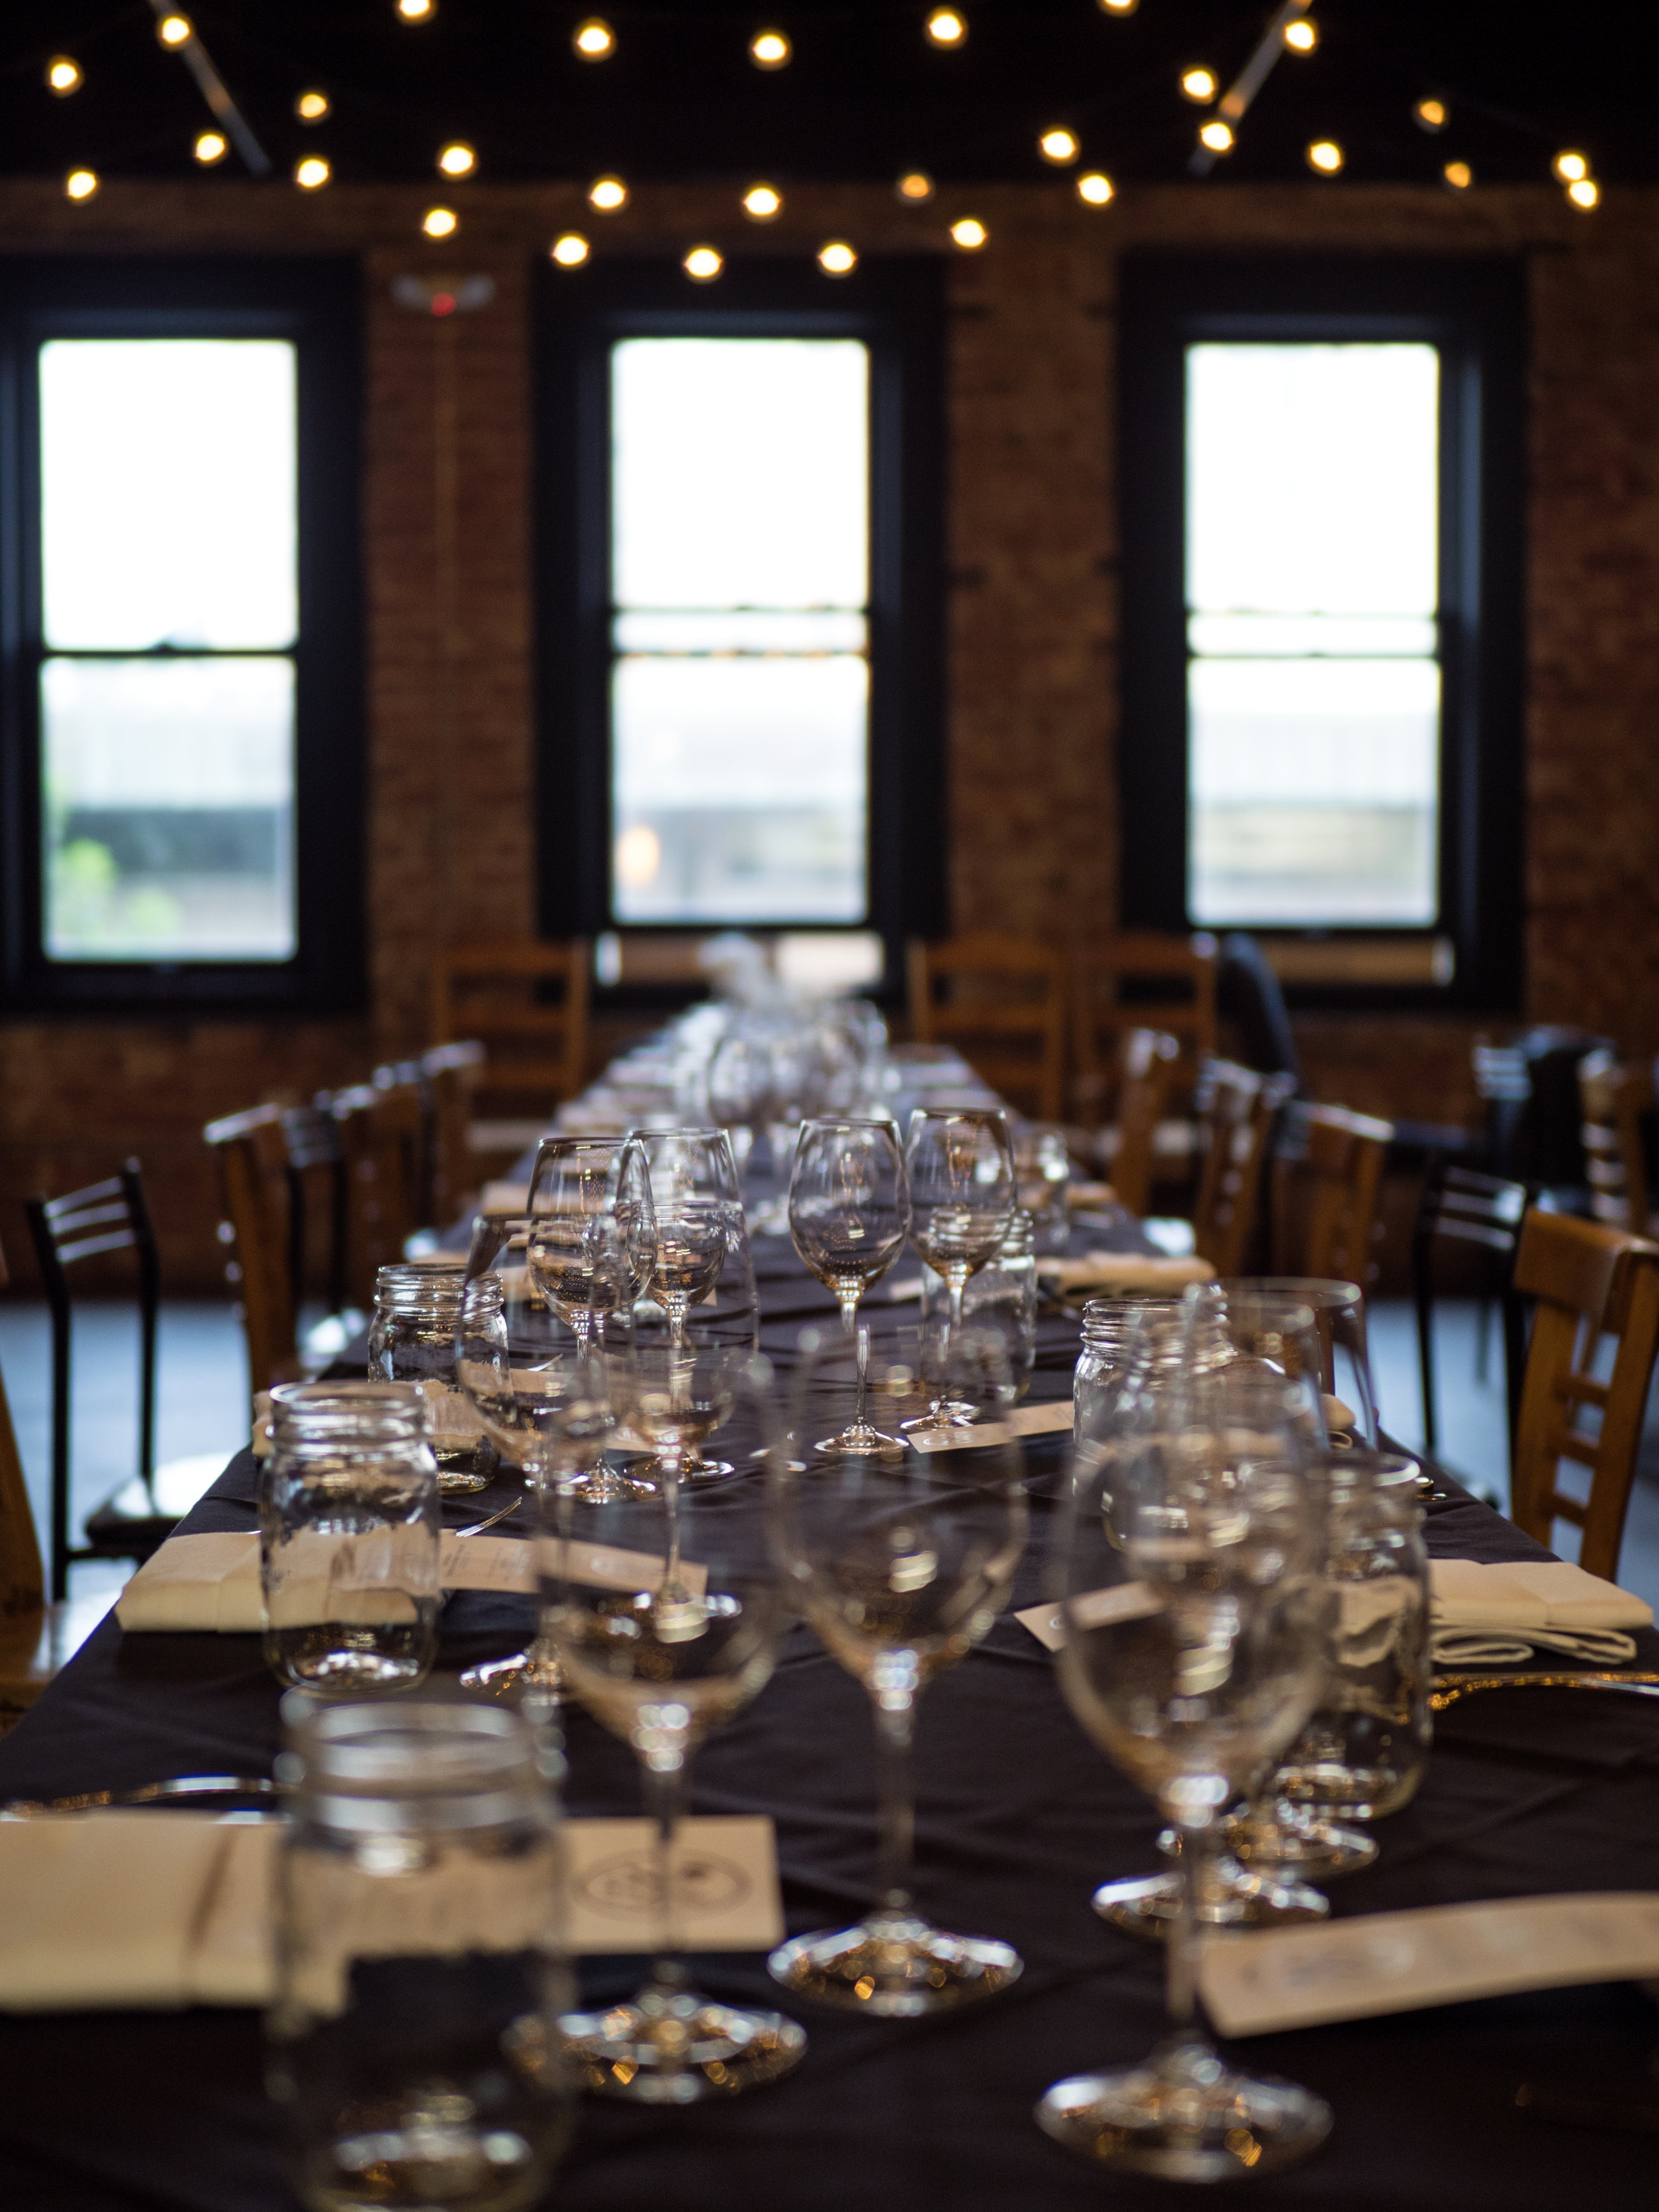 Musings by the Glass - Pig and the Lady Ho Farms Dinner - Dinner Table